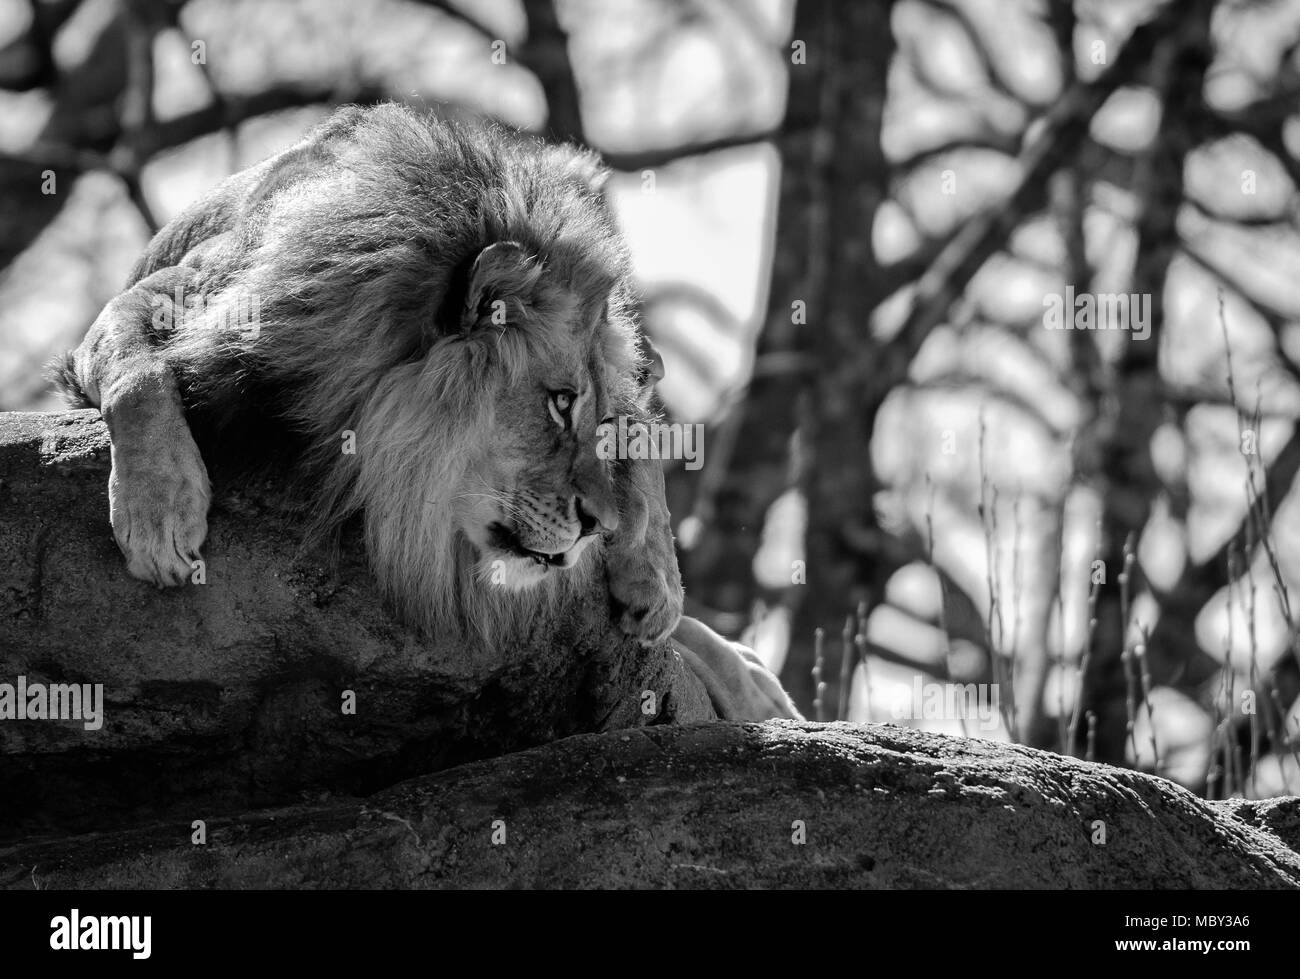 Lion Stares Right With Copy Space in black and white - Stock Image